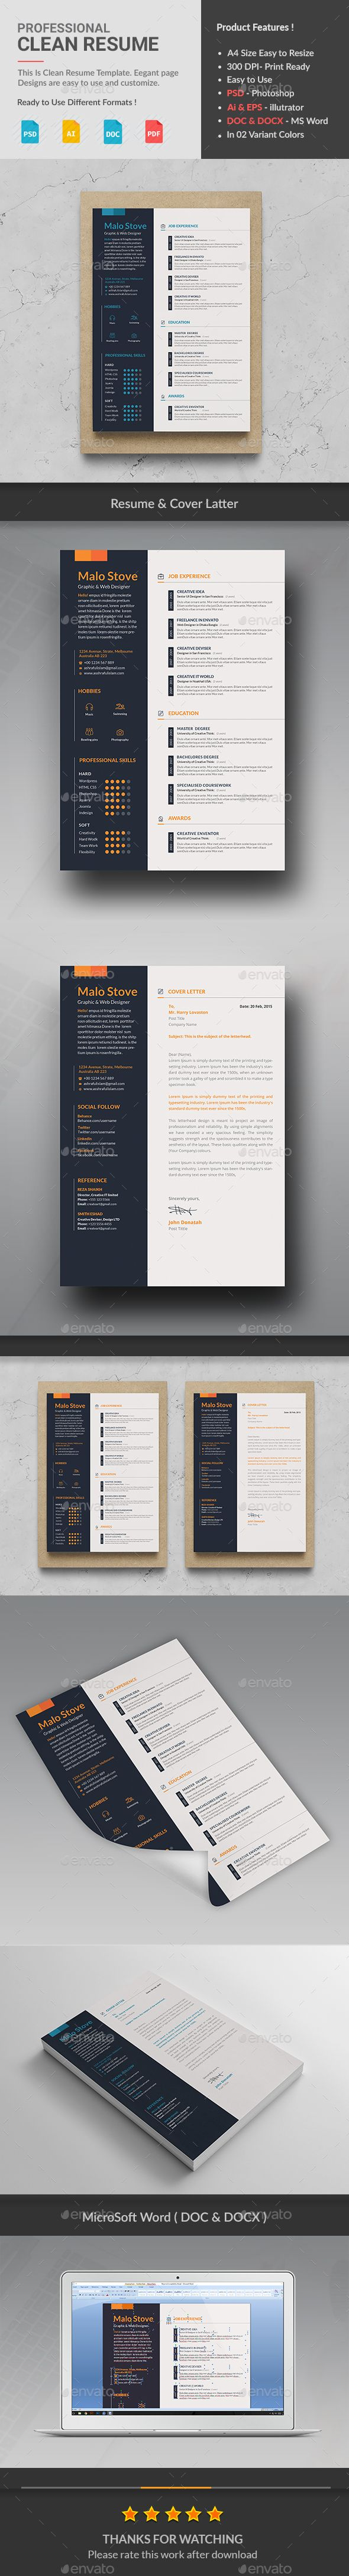 Love this simple clean resume design For